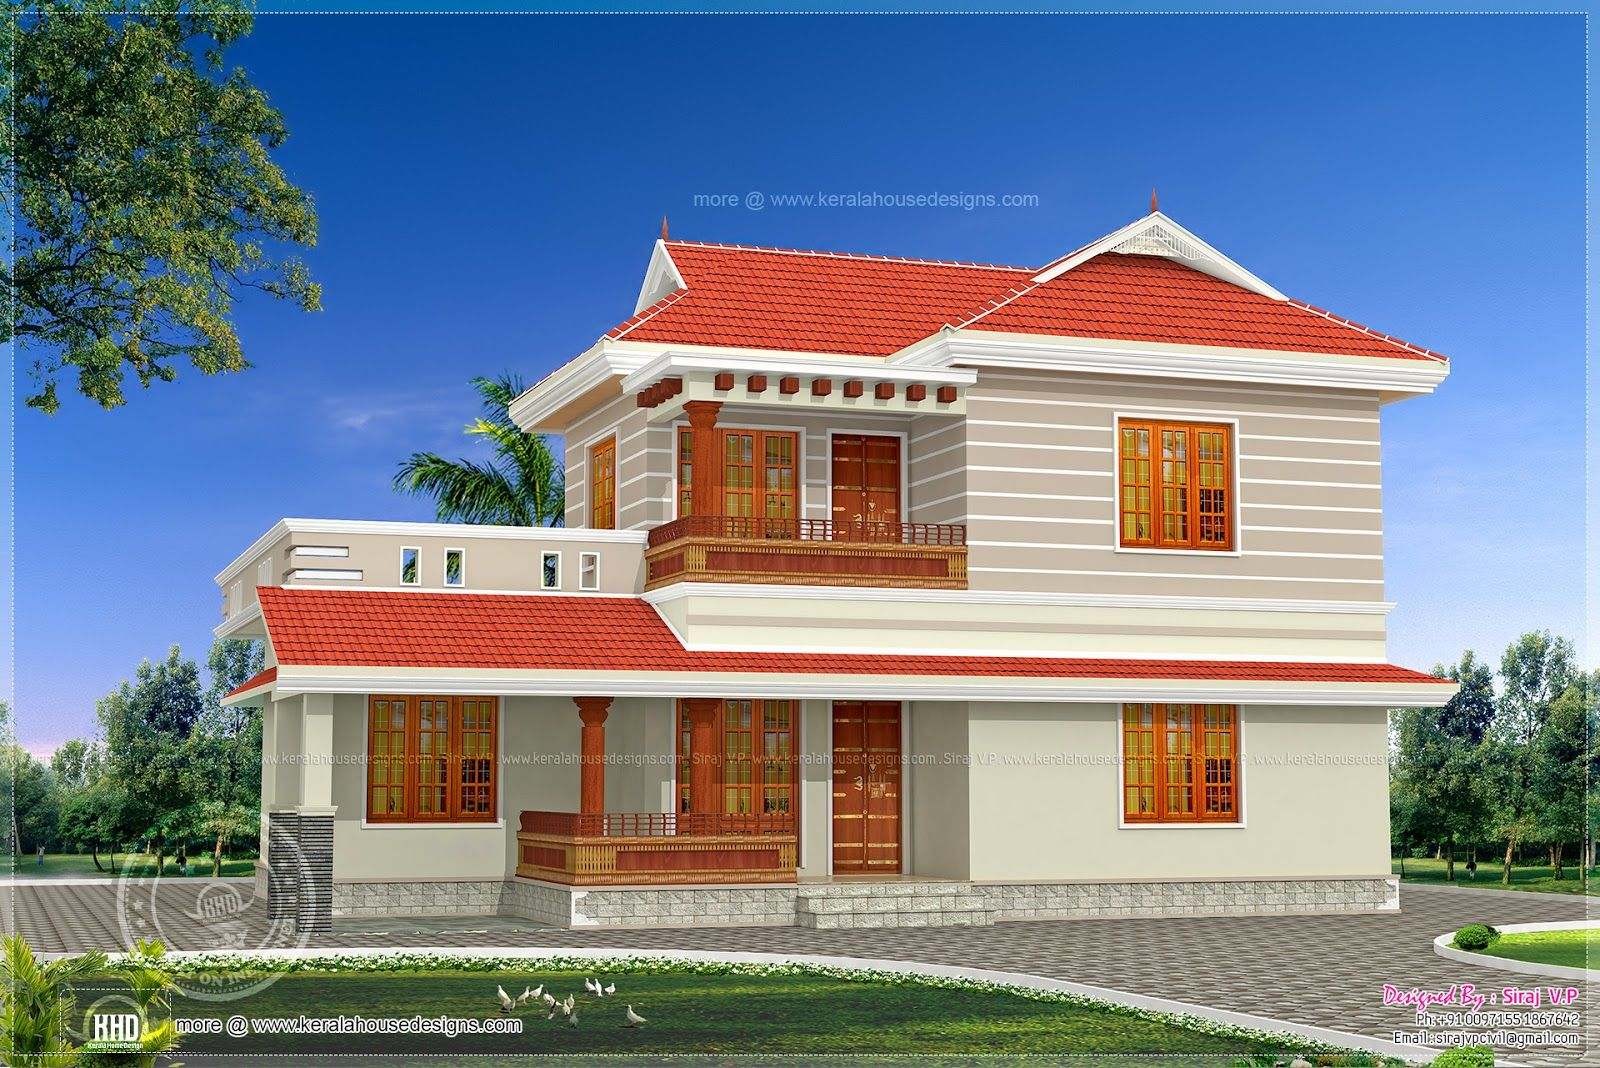 Design Square Yards Kerala Home And Floor Plans Front Elevation Kanal House Drawing Layout House Balcony Design House Design Drawing Low Cost House Plans